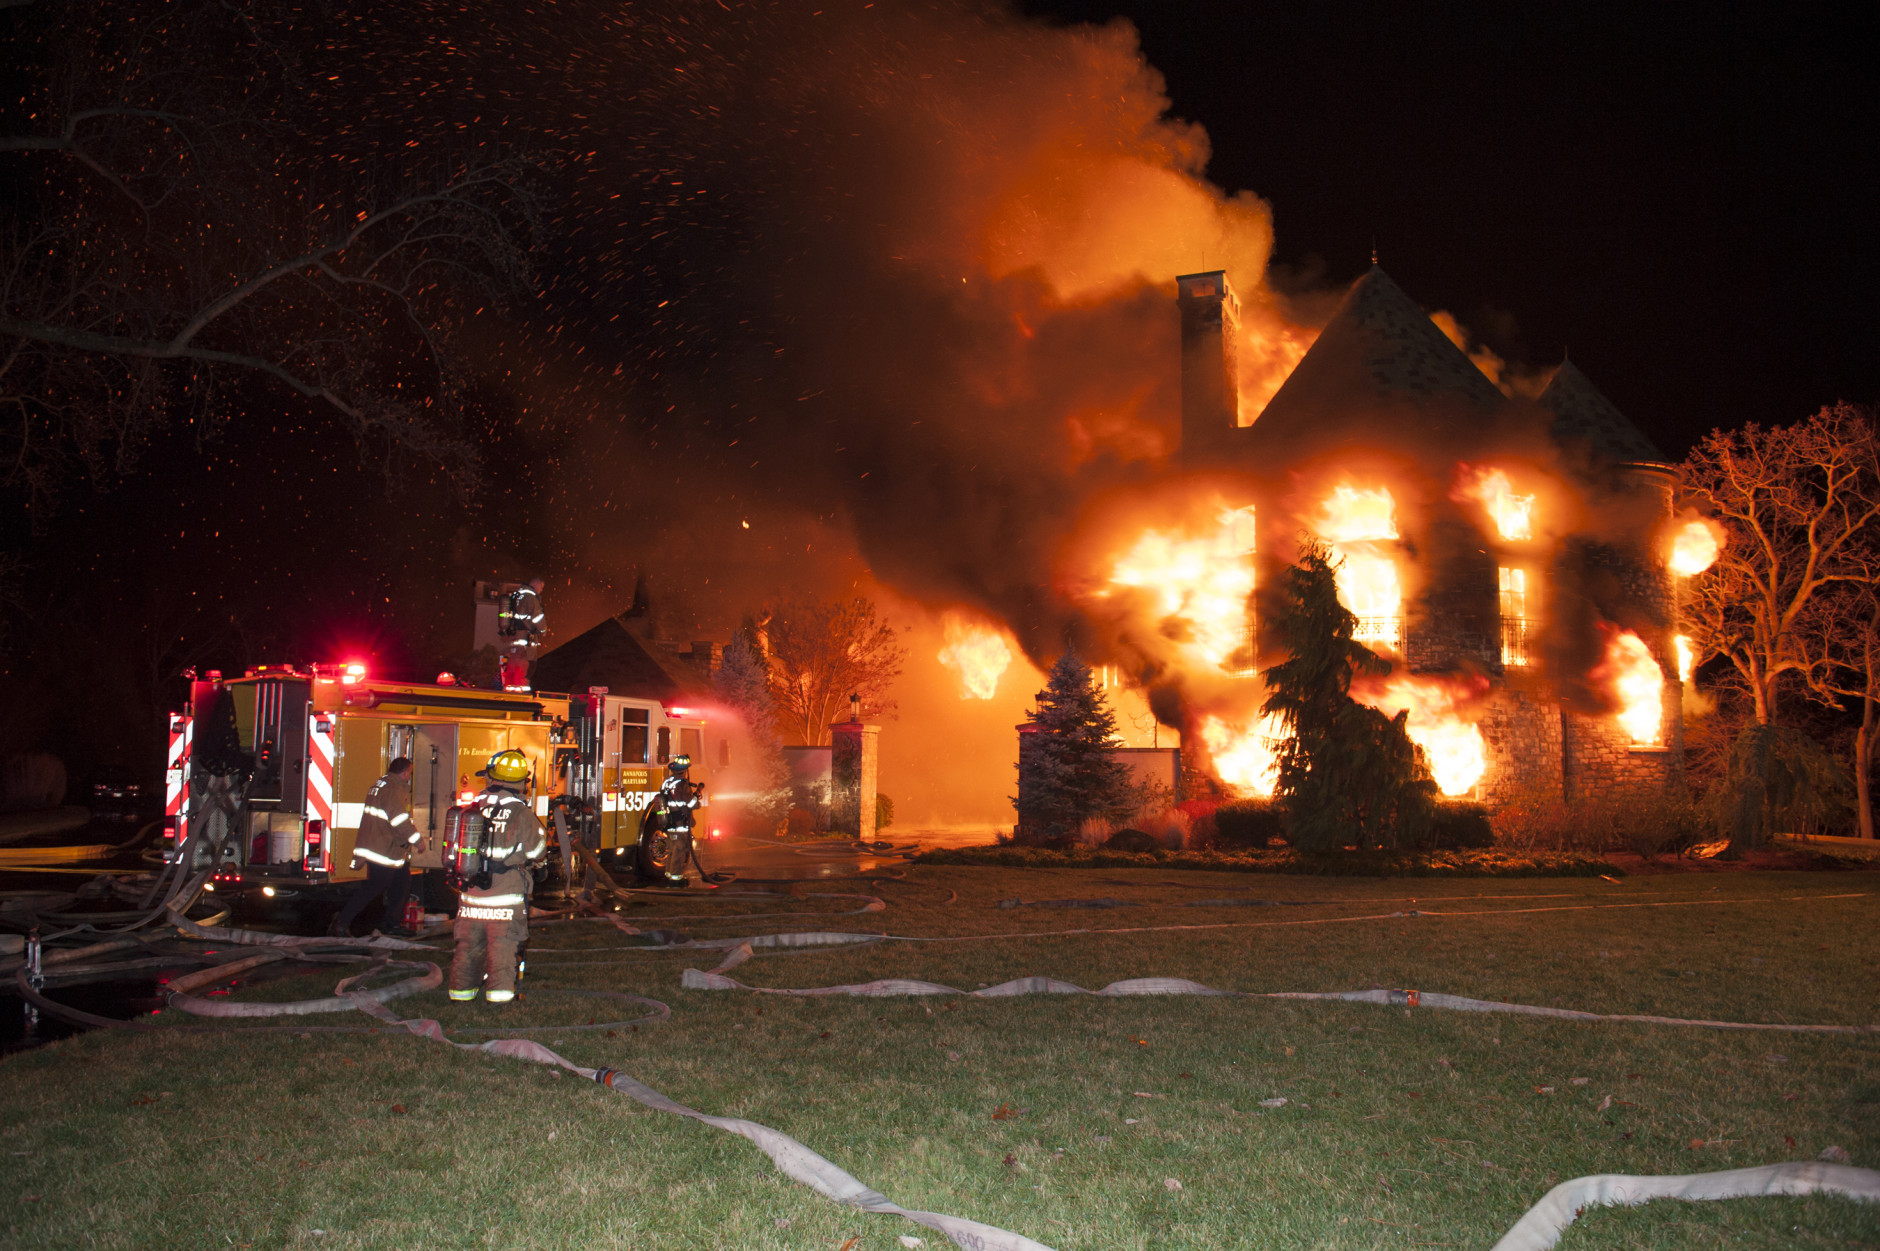 ATF To Hold Test Burns On Christmas Trees After Mansion Fire WTOP - Christmas Trees On Fire